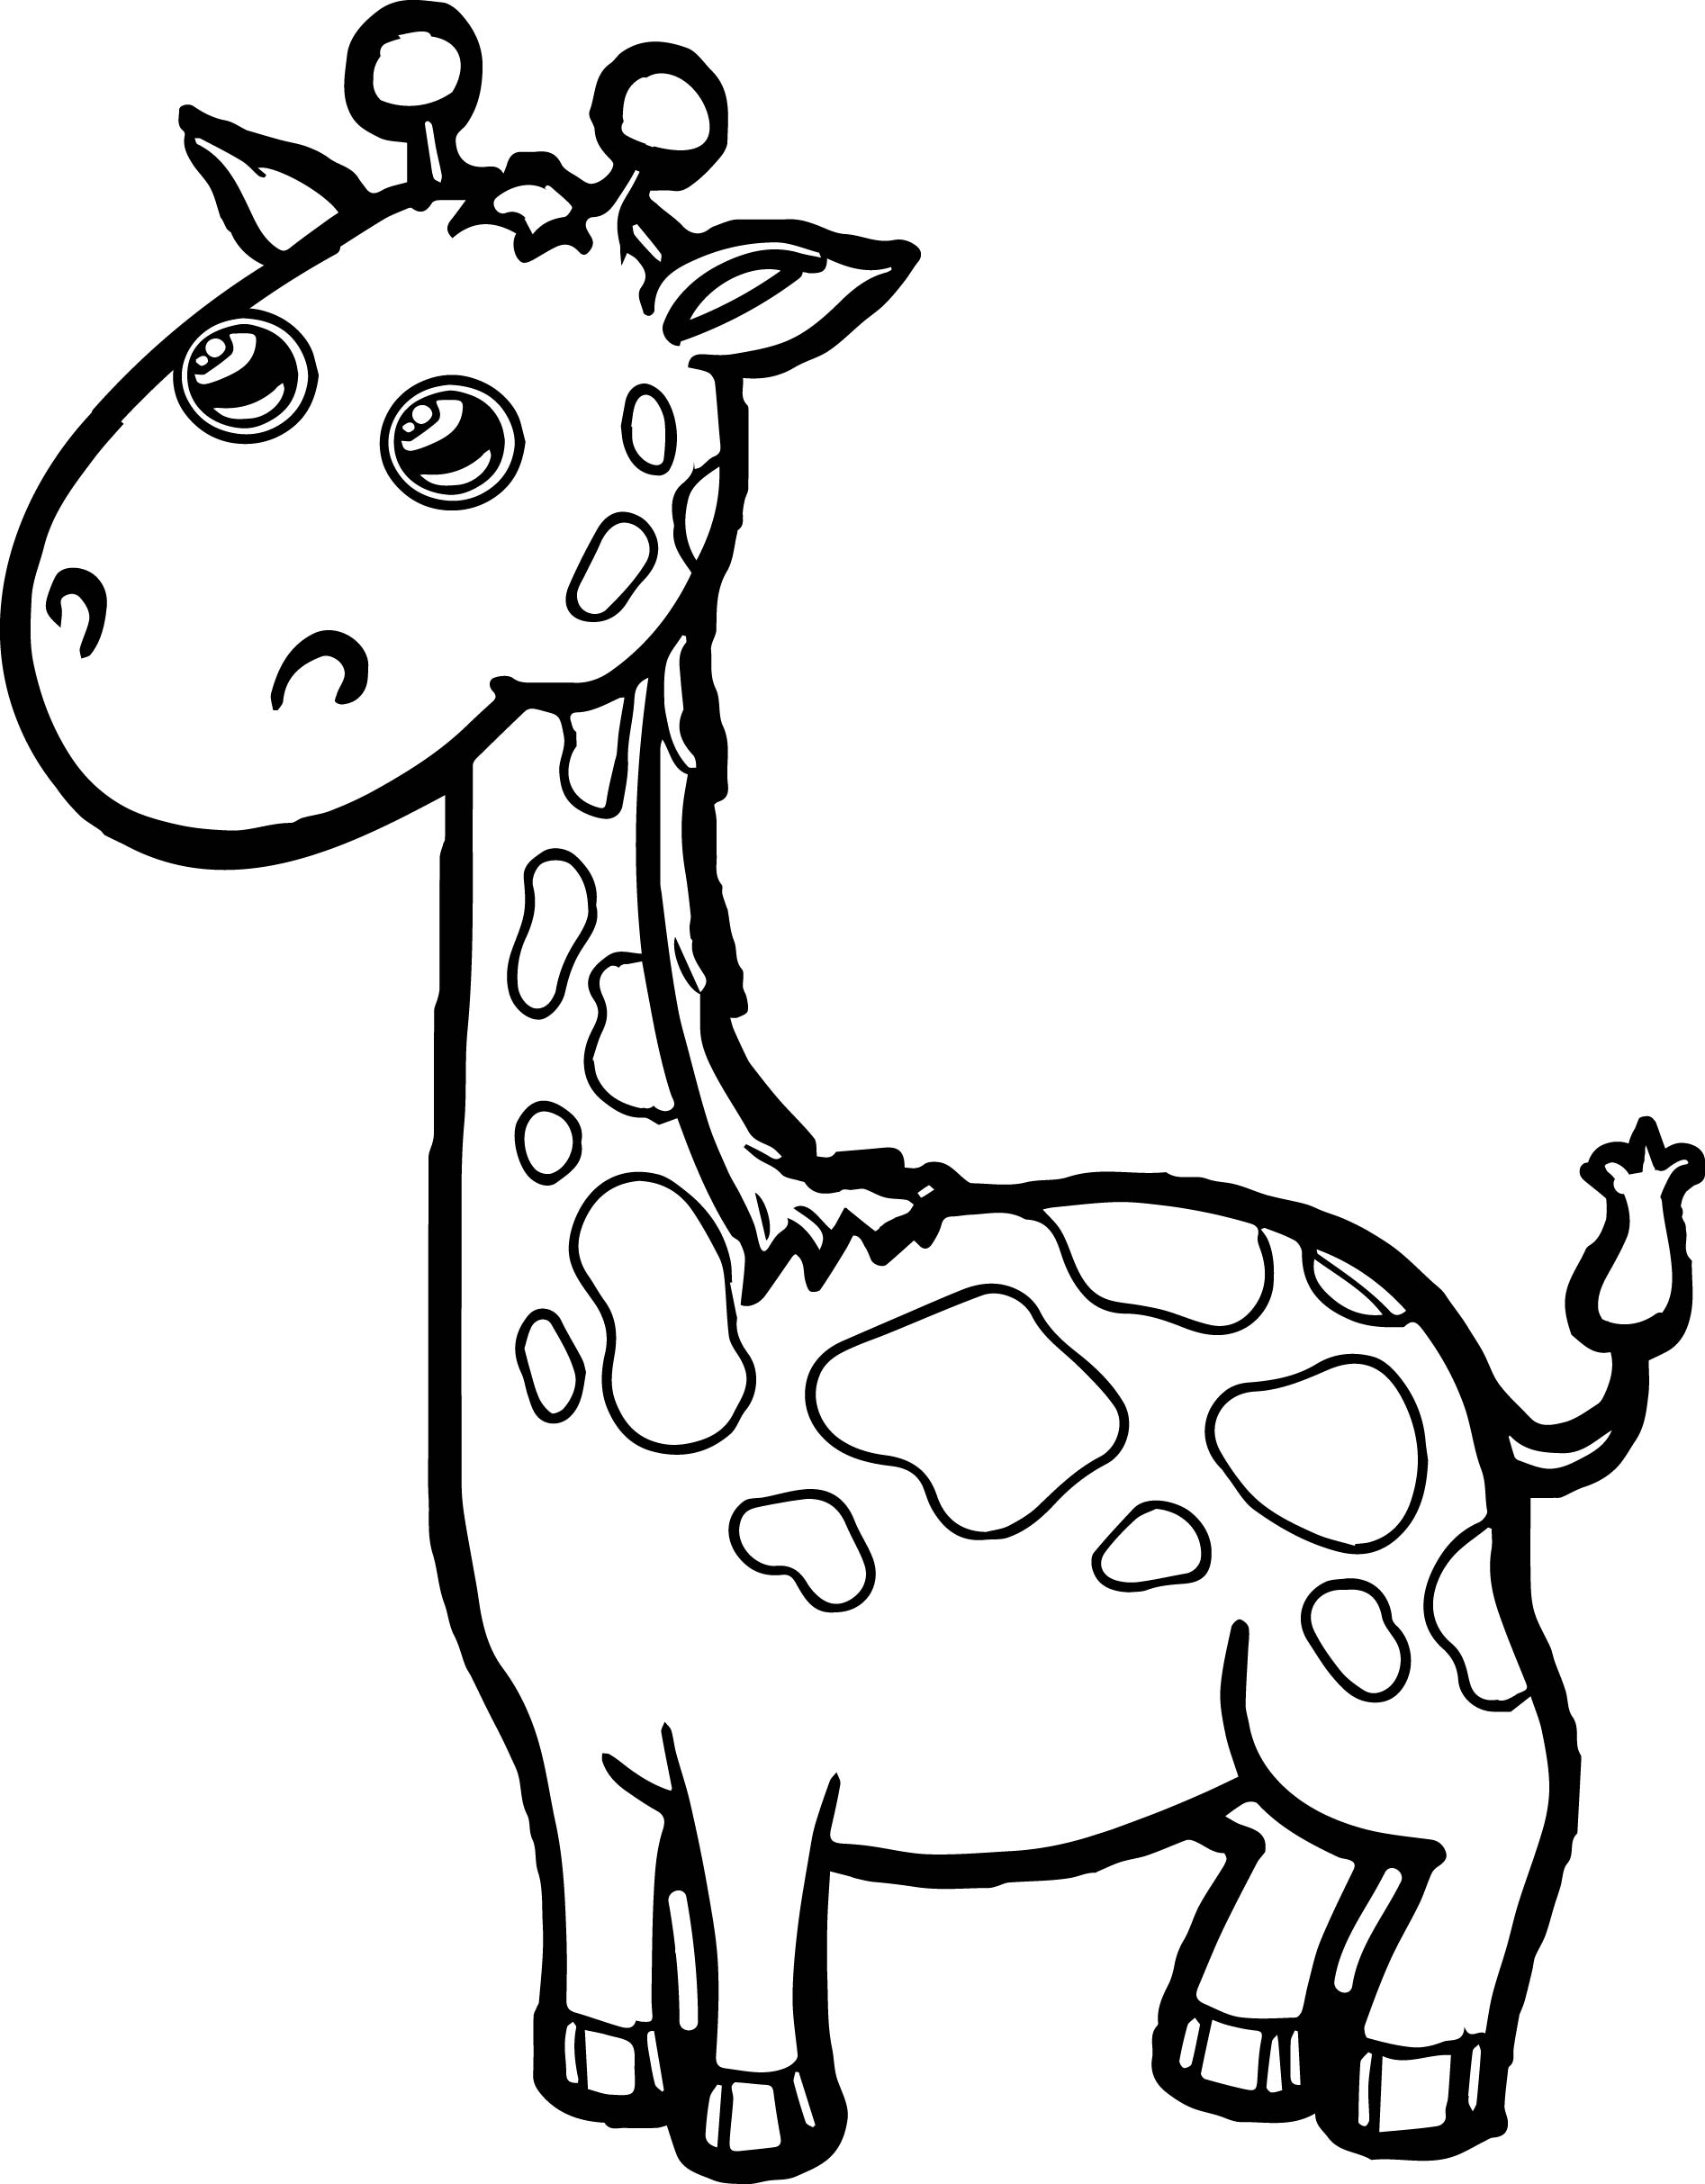 cartoon printable coloring pages - zoo giraffe cartoon coloring page